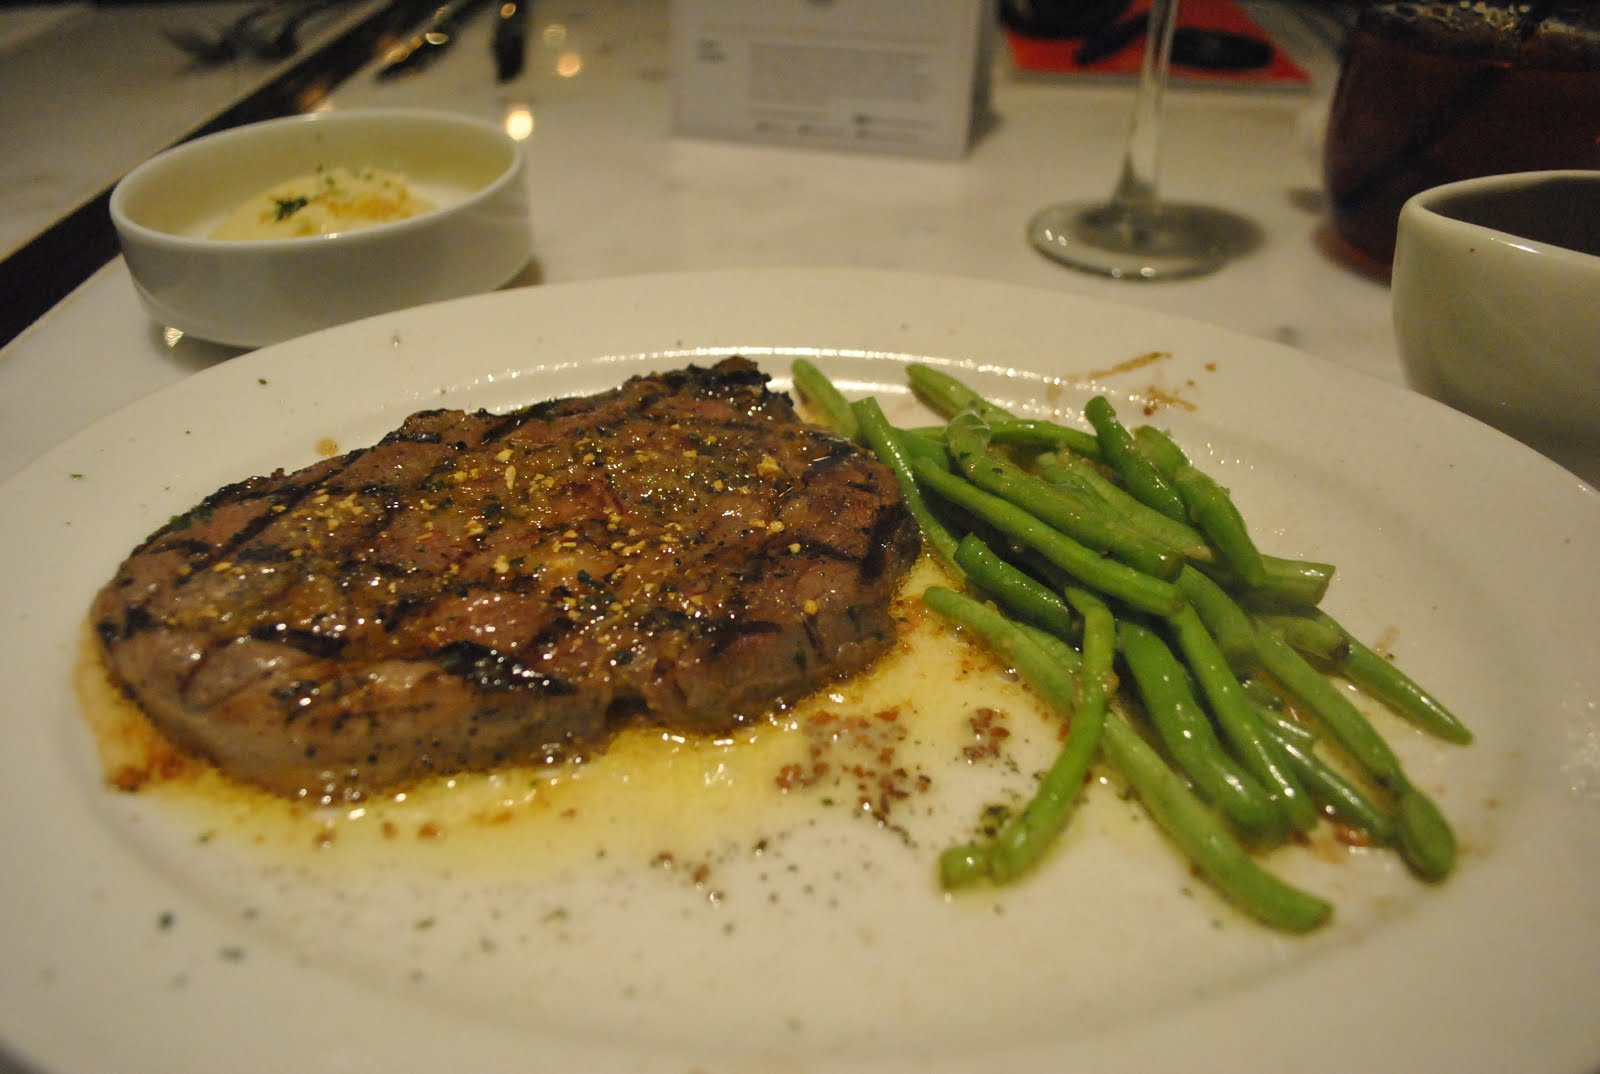 HOG ETC - Plaza Indonesia : Making out with the Steak - Entrecote Steak 2